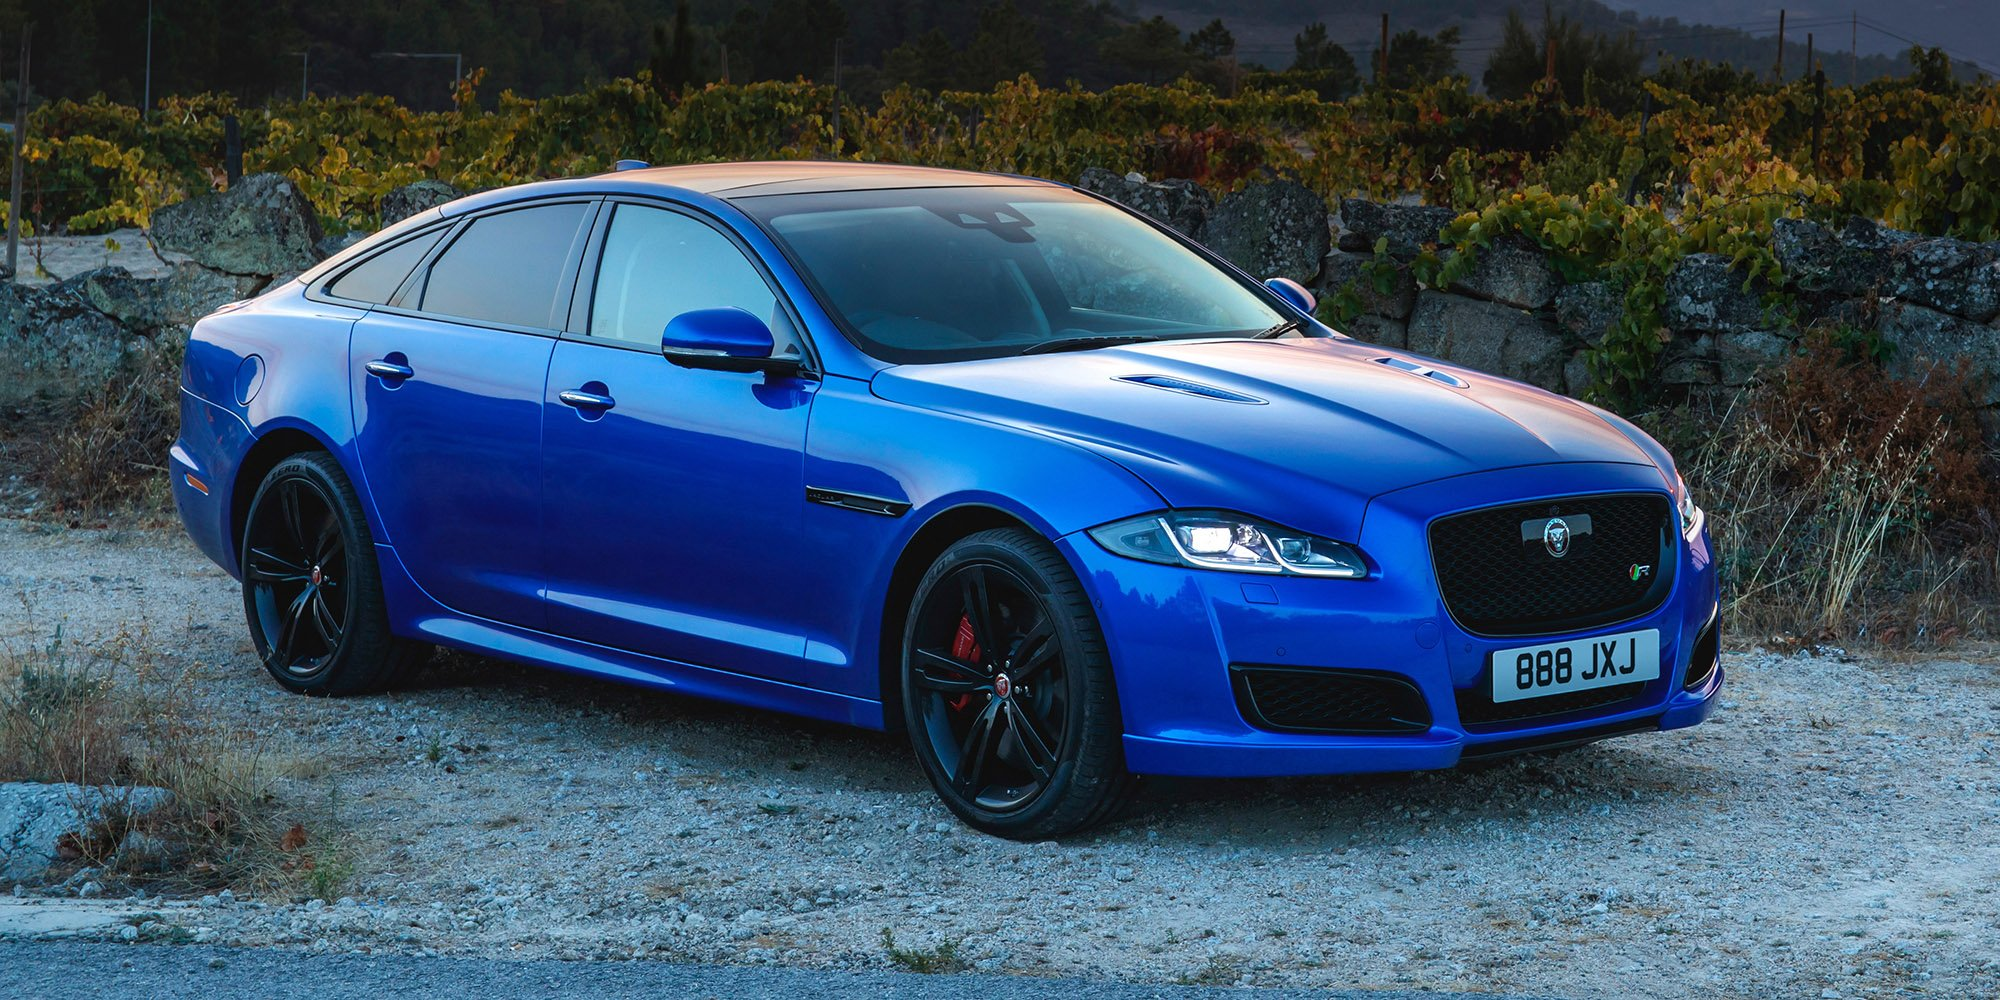 2018 Jaguar Xj Pricing And Specs Here Q1 2018 Photos 1